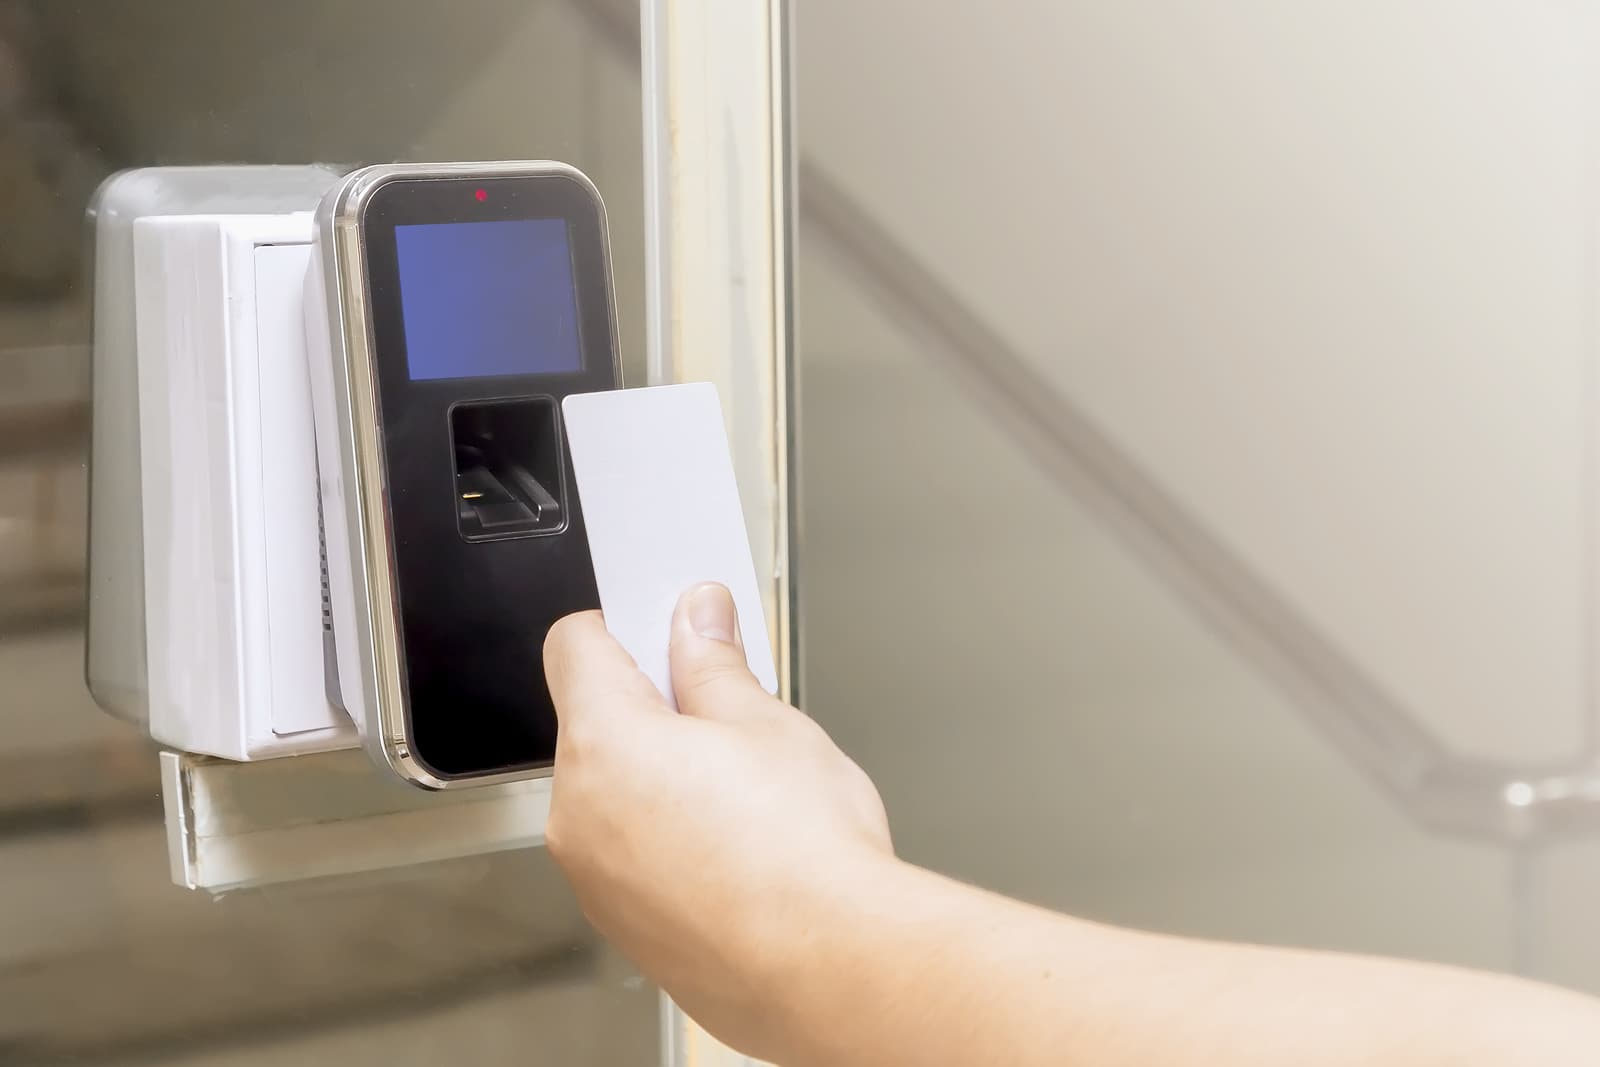 Close up of the hand with key card are scanning for enter digital security door system in the office building